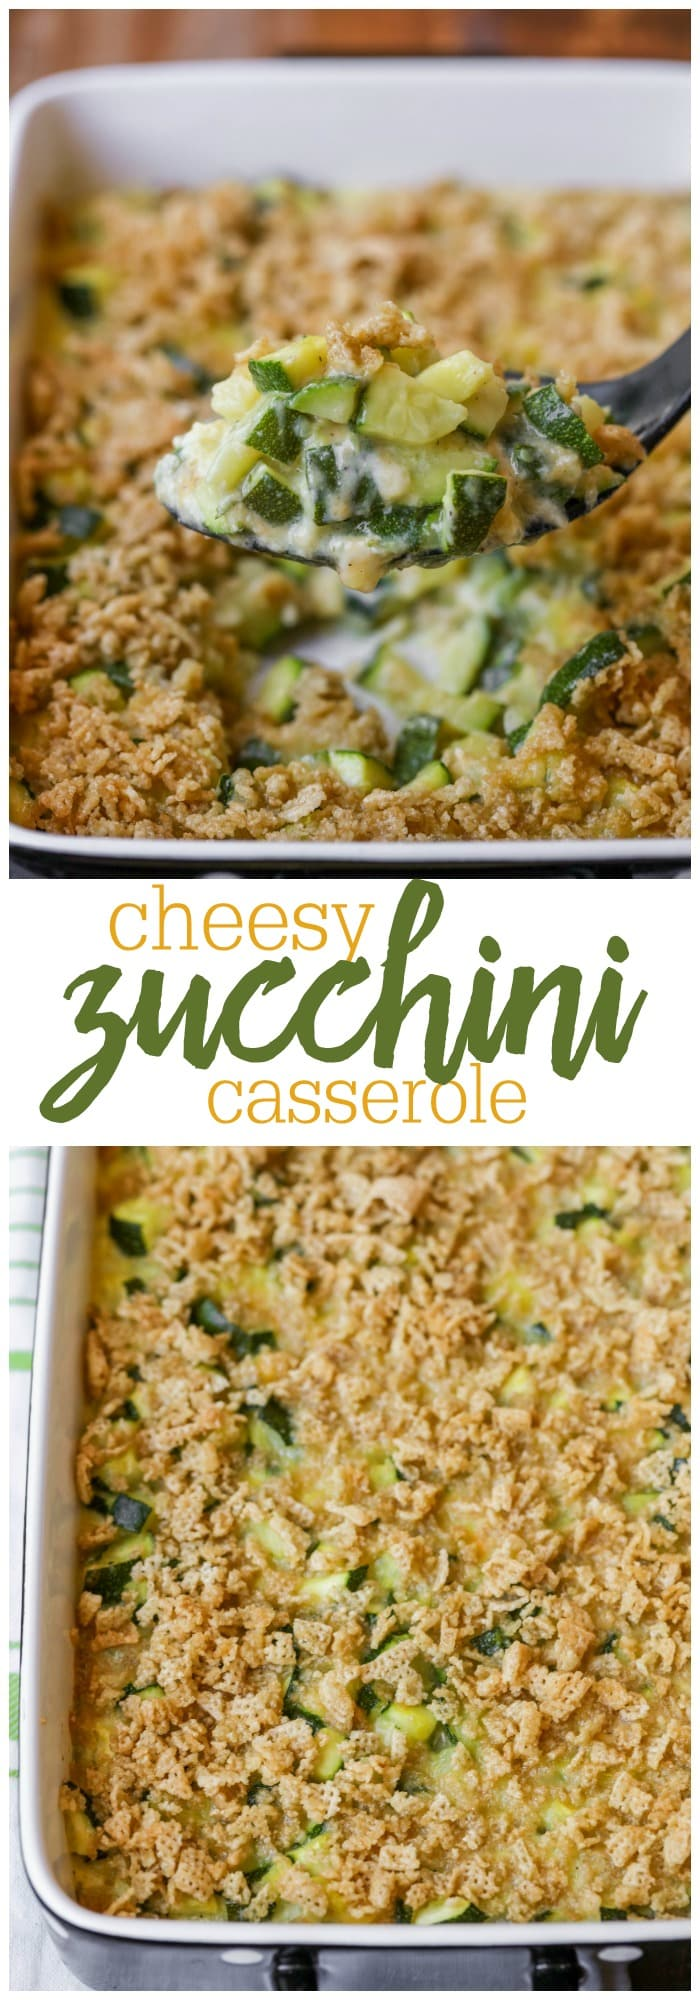 Cheesy Zucchini Casserole - a simple and delicious side dish made with zucchini pieces, cheese, butter and crushed Chex! It's so good!